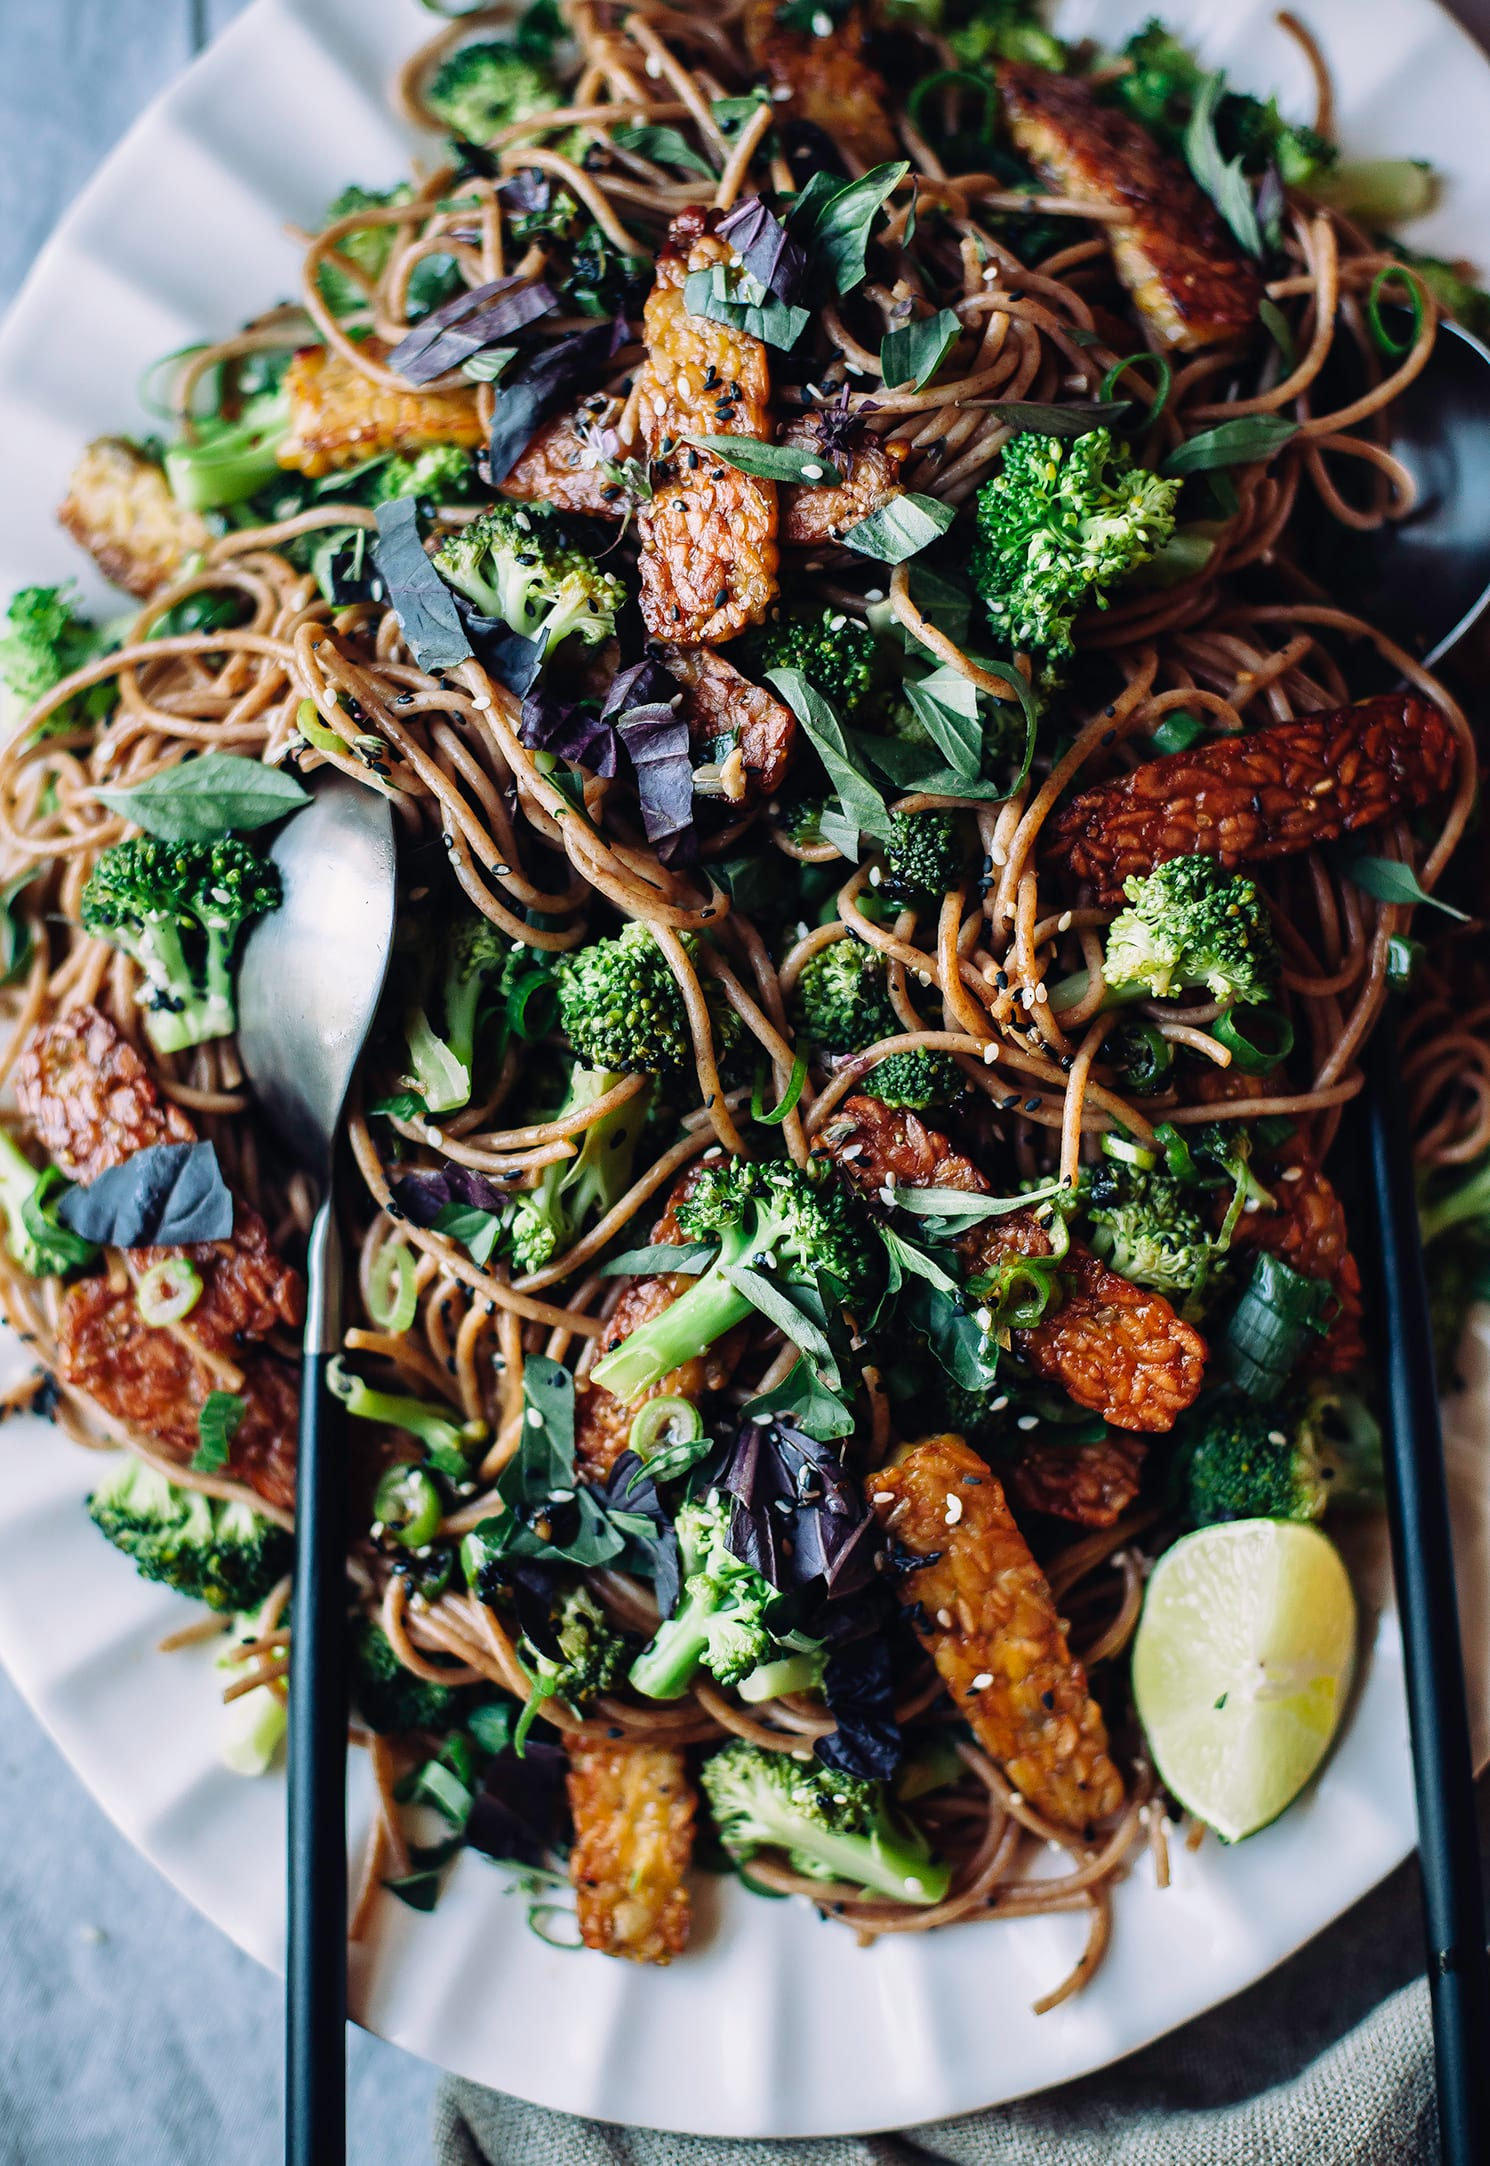 garlic sesame noodles with broccoli, basil & crispy tempeh (#vegan, quick and healthy) - The First Mess